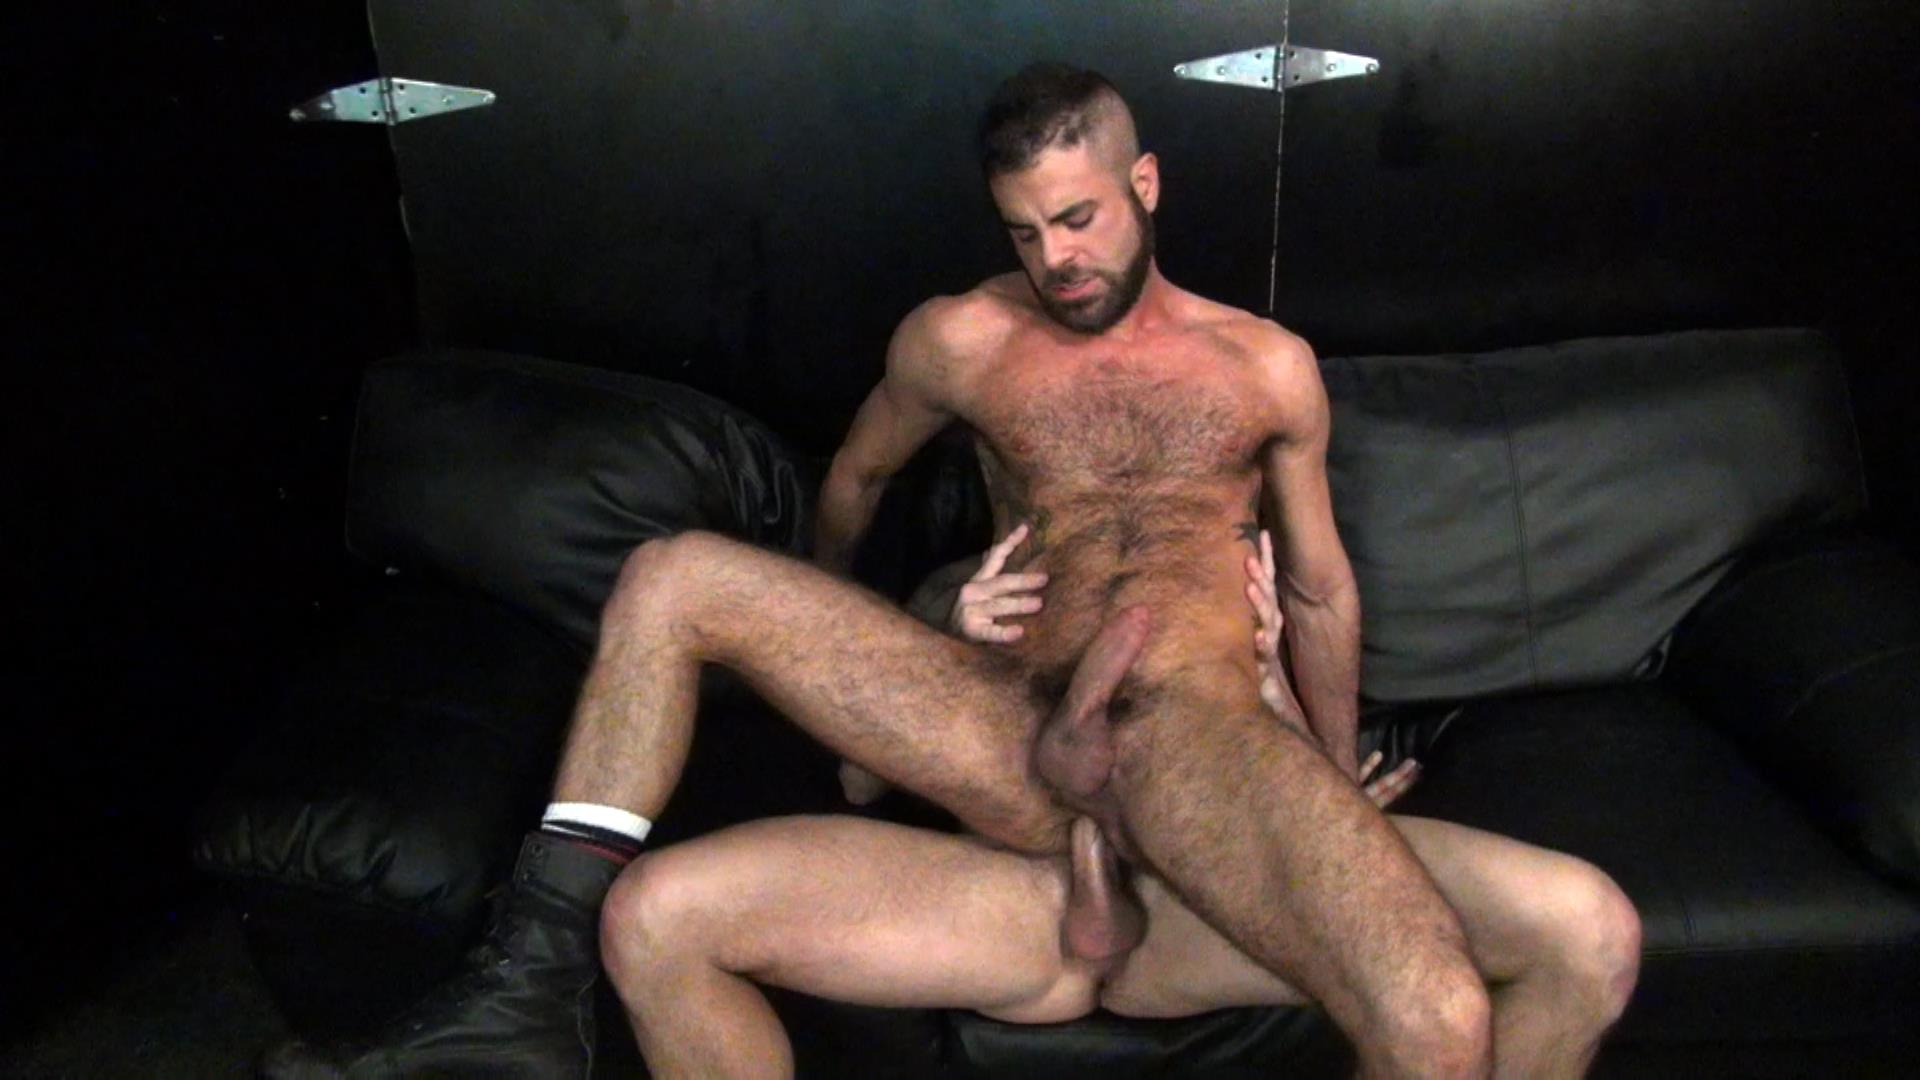 Raw Fuck Club Max Cameron and Markus Isaacs Hairy Muscle Bareback Breeding BBBH Amateur Gay Porn 3 Max Cameron and Markus Isaacs Breeding Each Others Hairy Ass